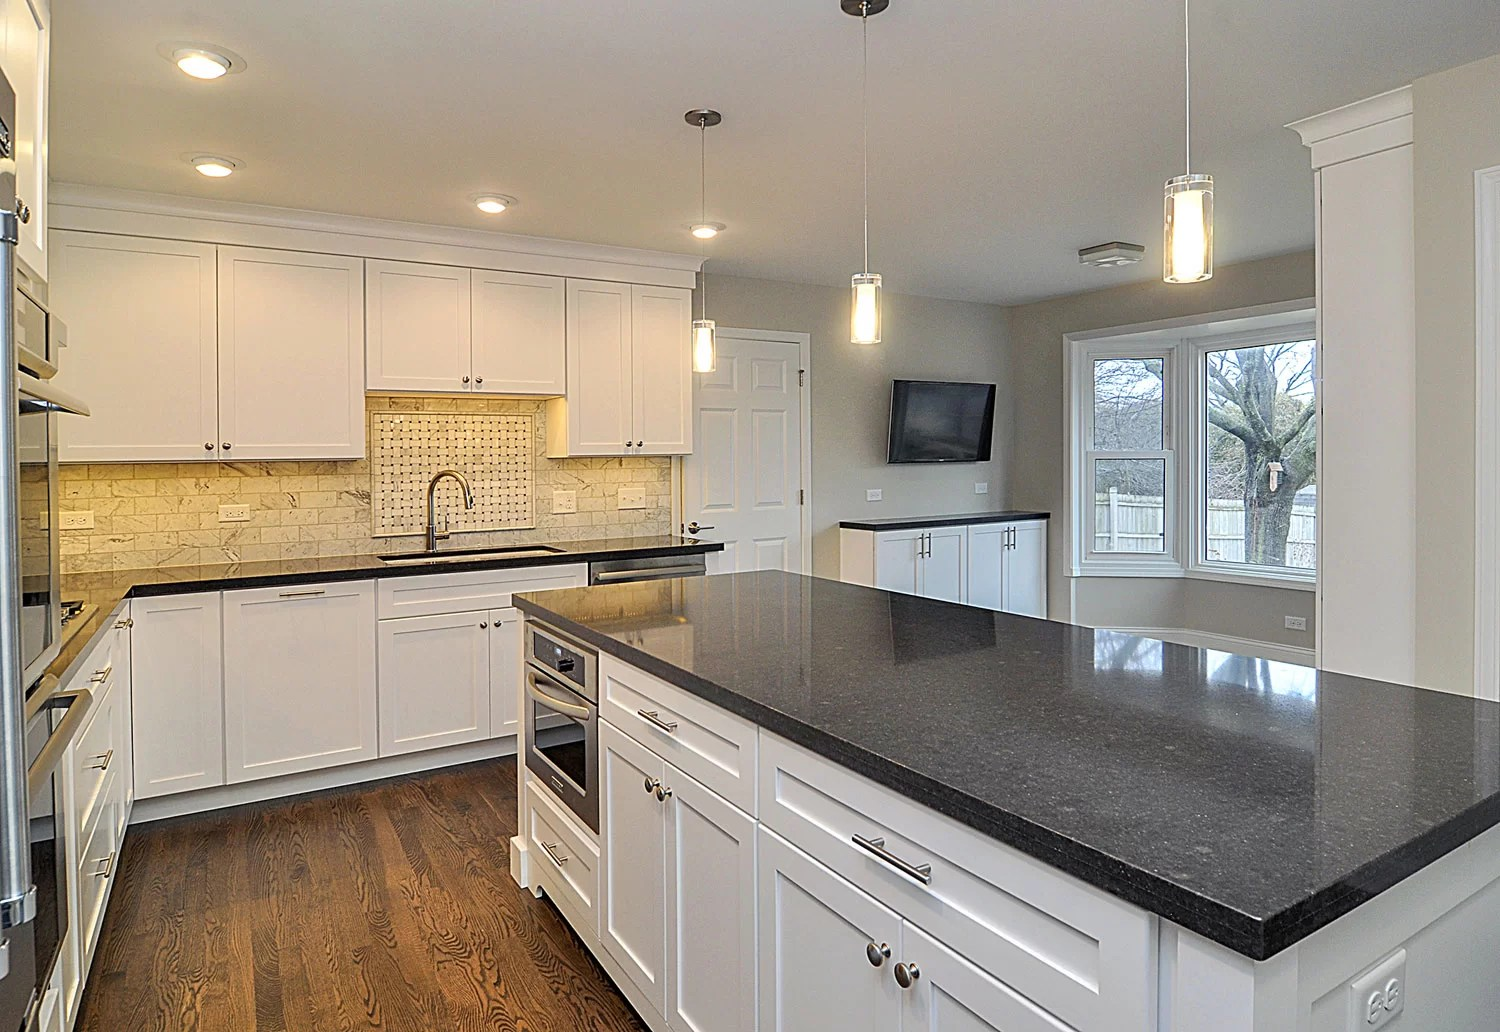 jim & christina's kitchen remodel pictures | home remodeling